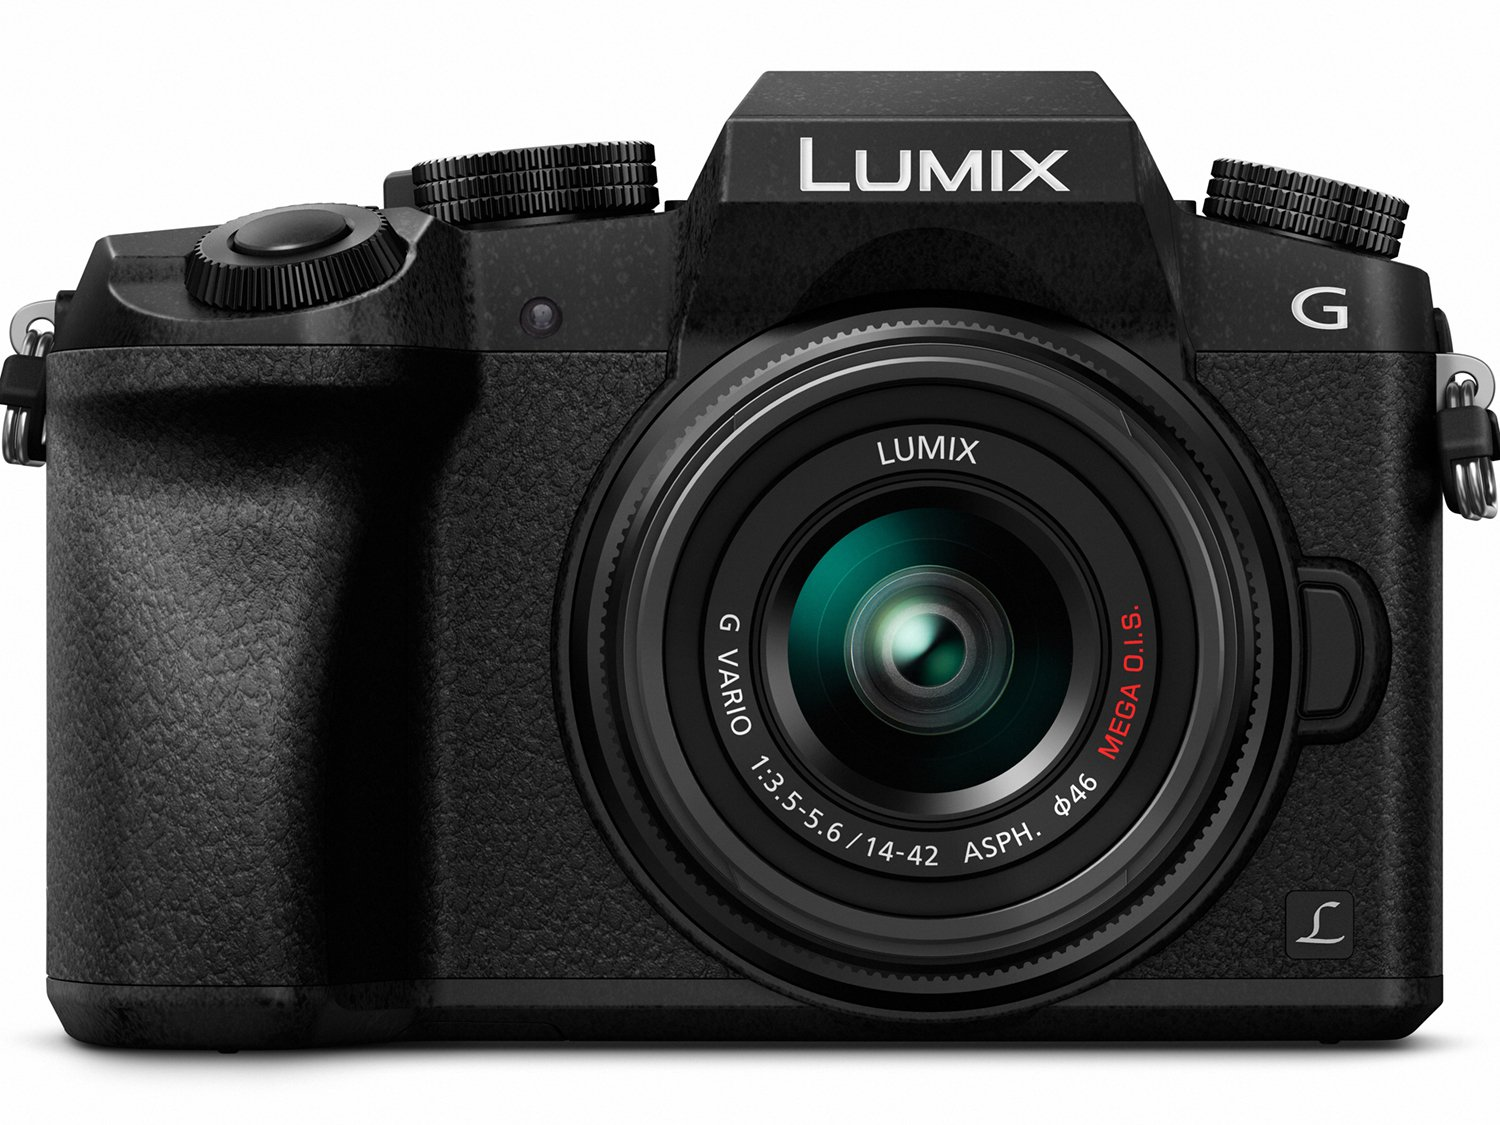 PANASONIC LUMIX G7 4K Mirrorless Camera, with 14-42mm MEGA O.I.S